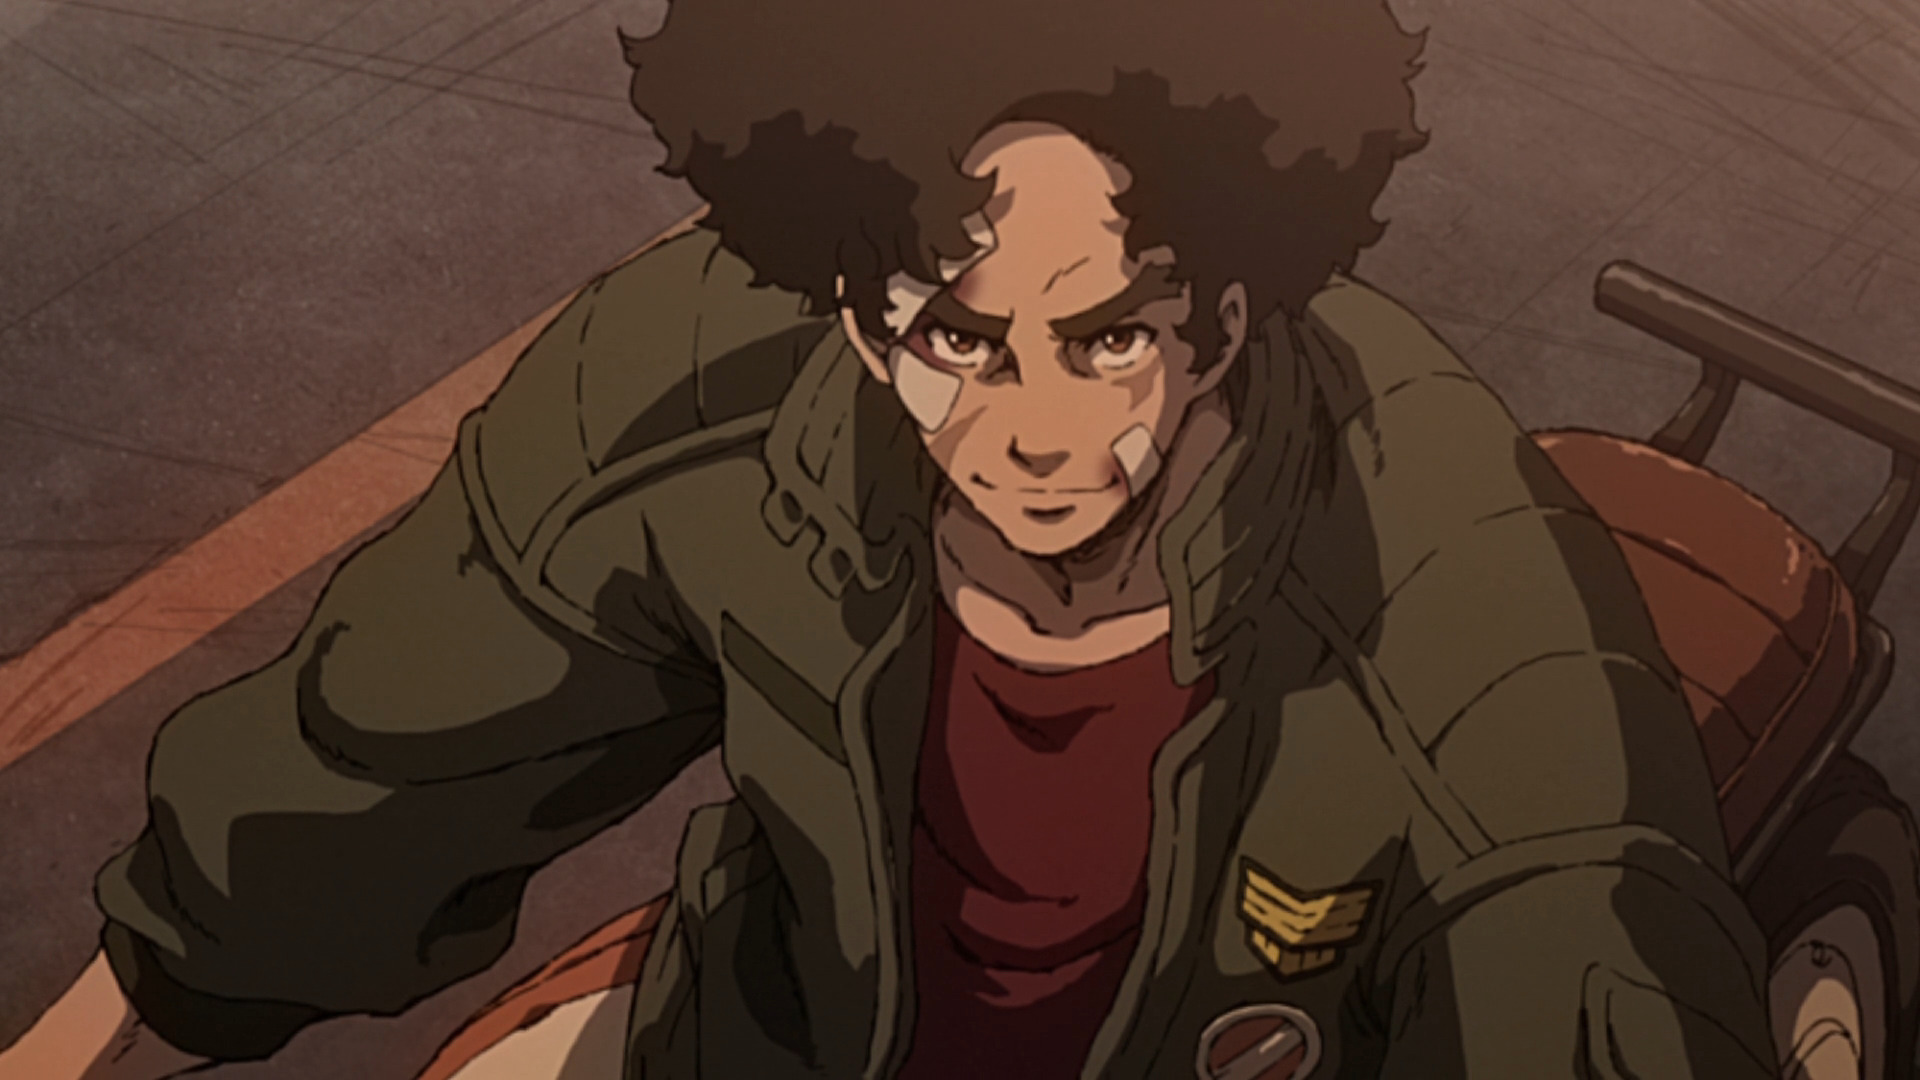 Joe from Megalobox on a motorcycle, smiling.